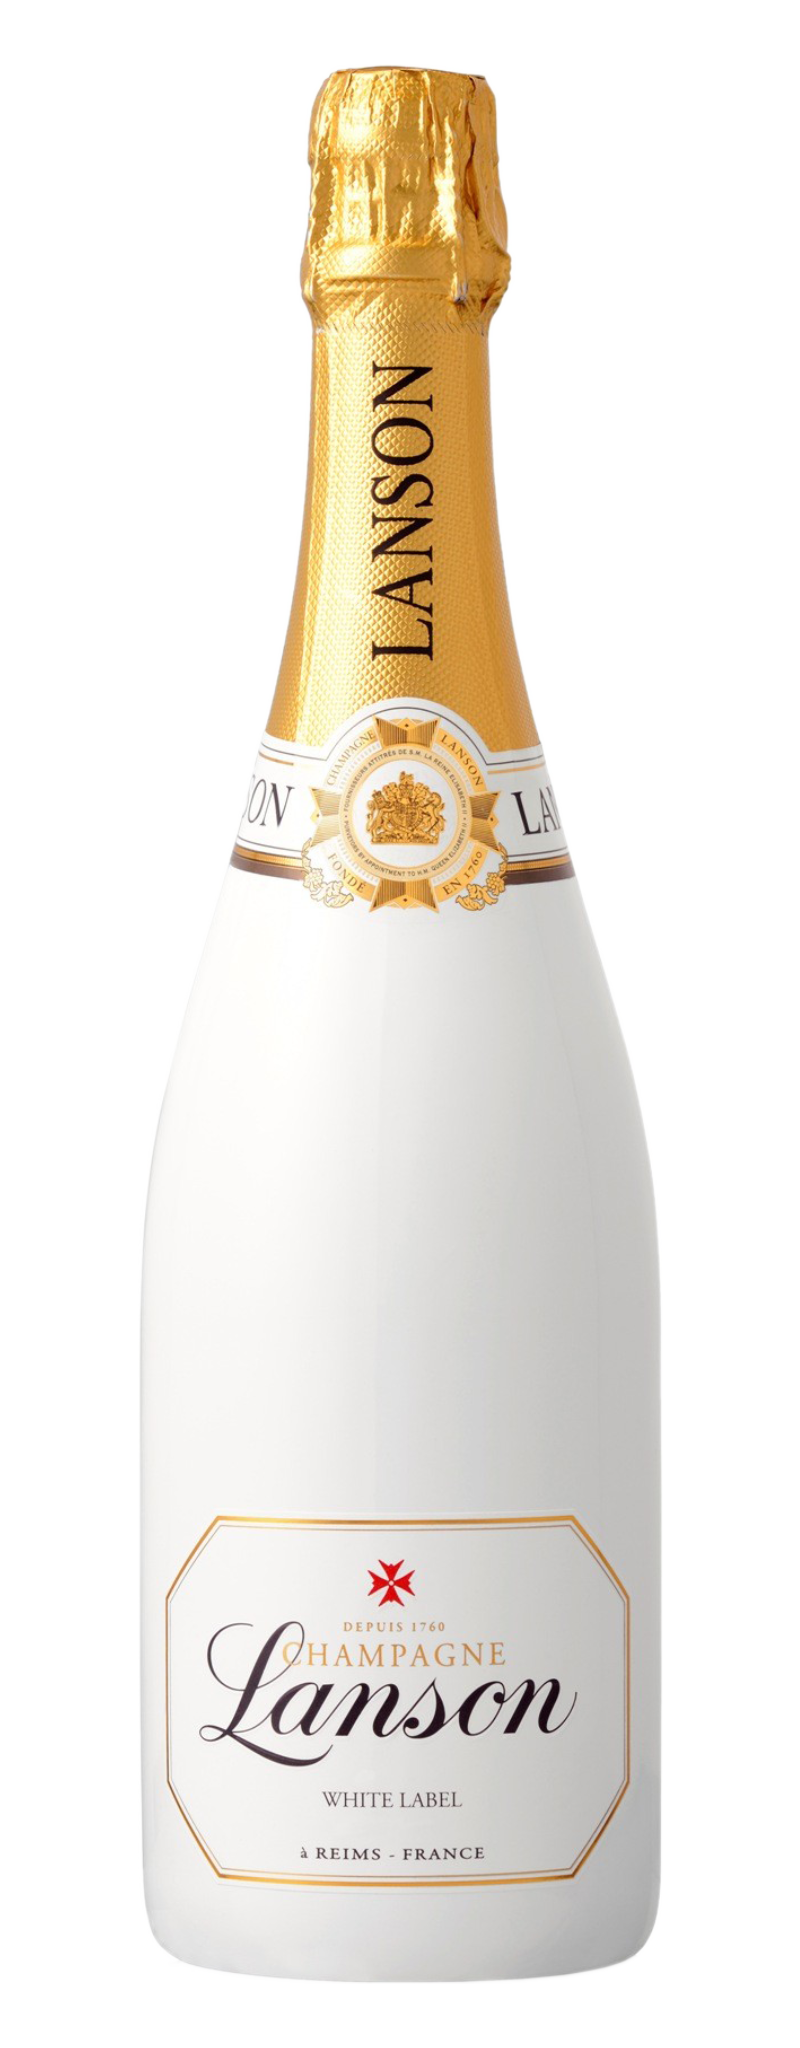 Champagne Lanson White Label  - 750ml